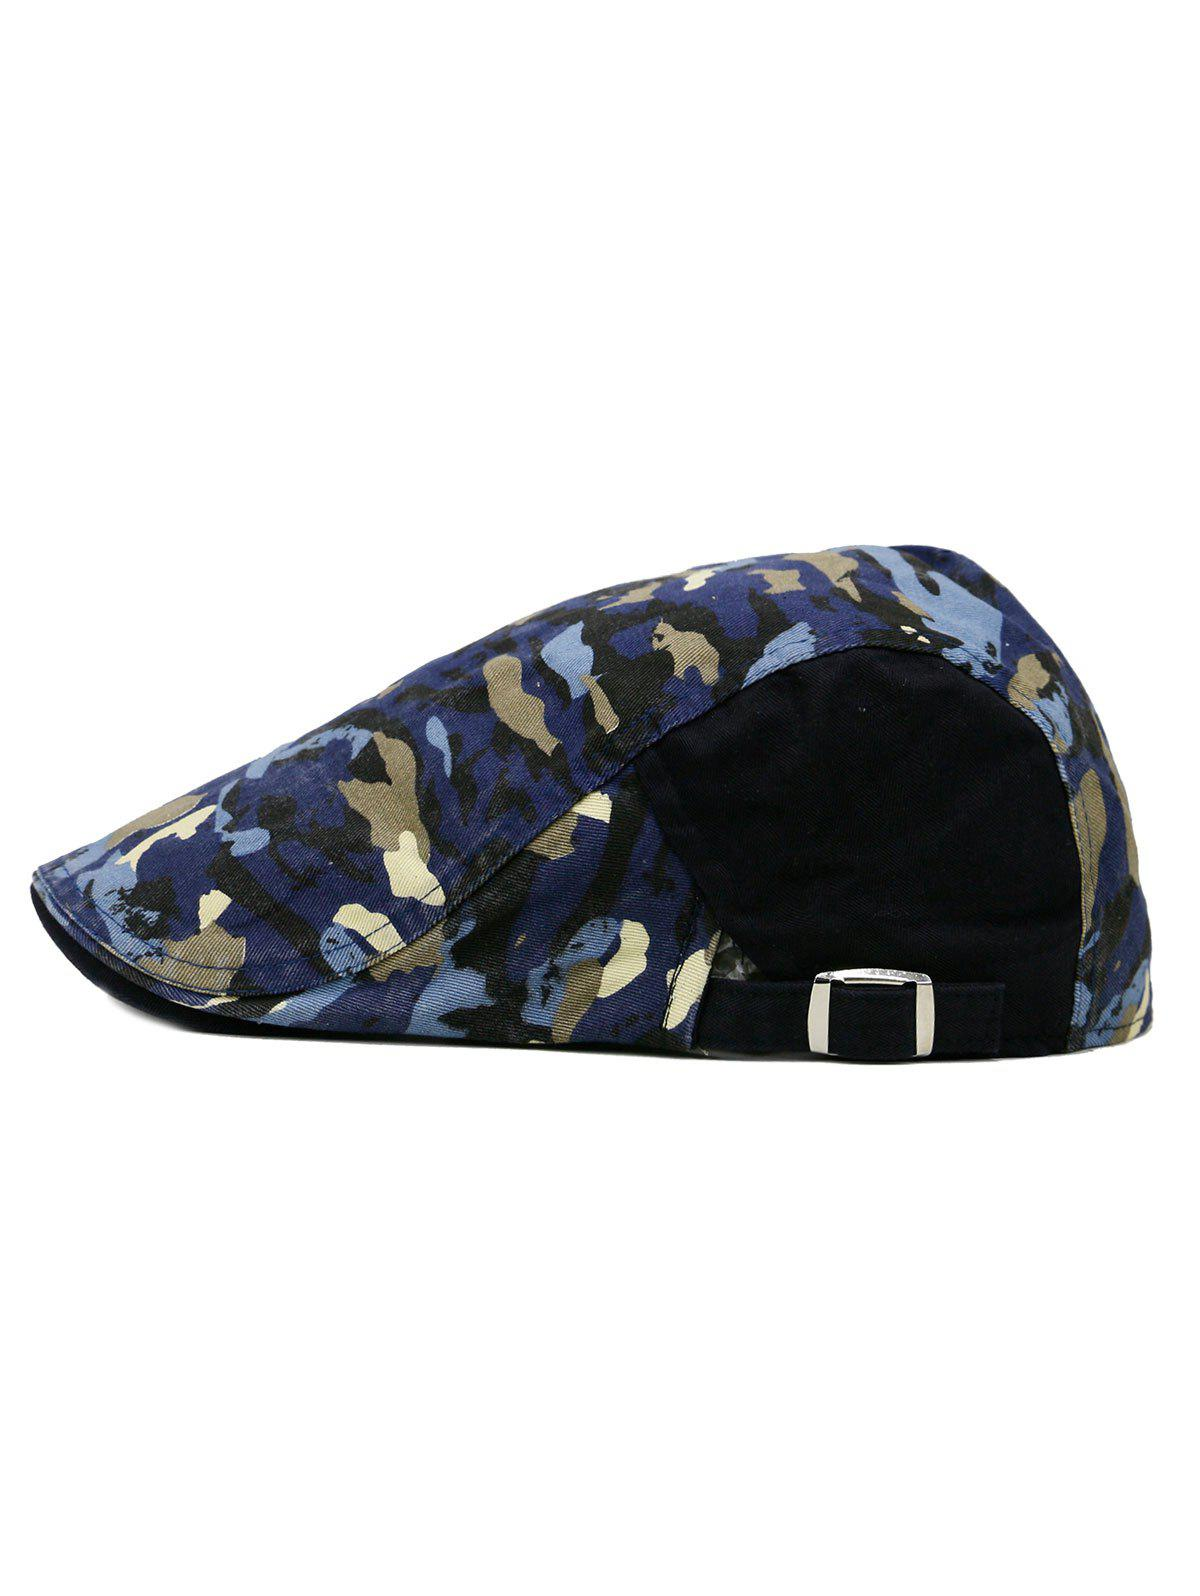 Unique Colored Camouflage Pattern Cabbie Hat unique beer drinking hard hat camouflage green